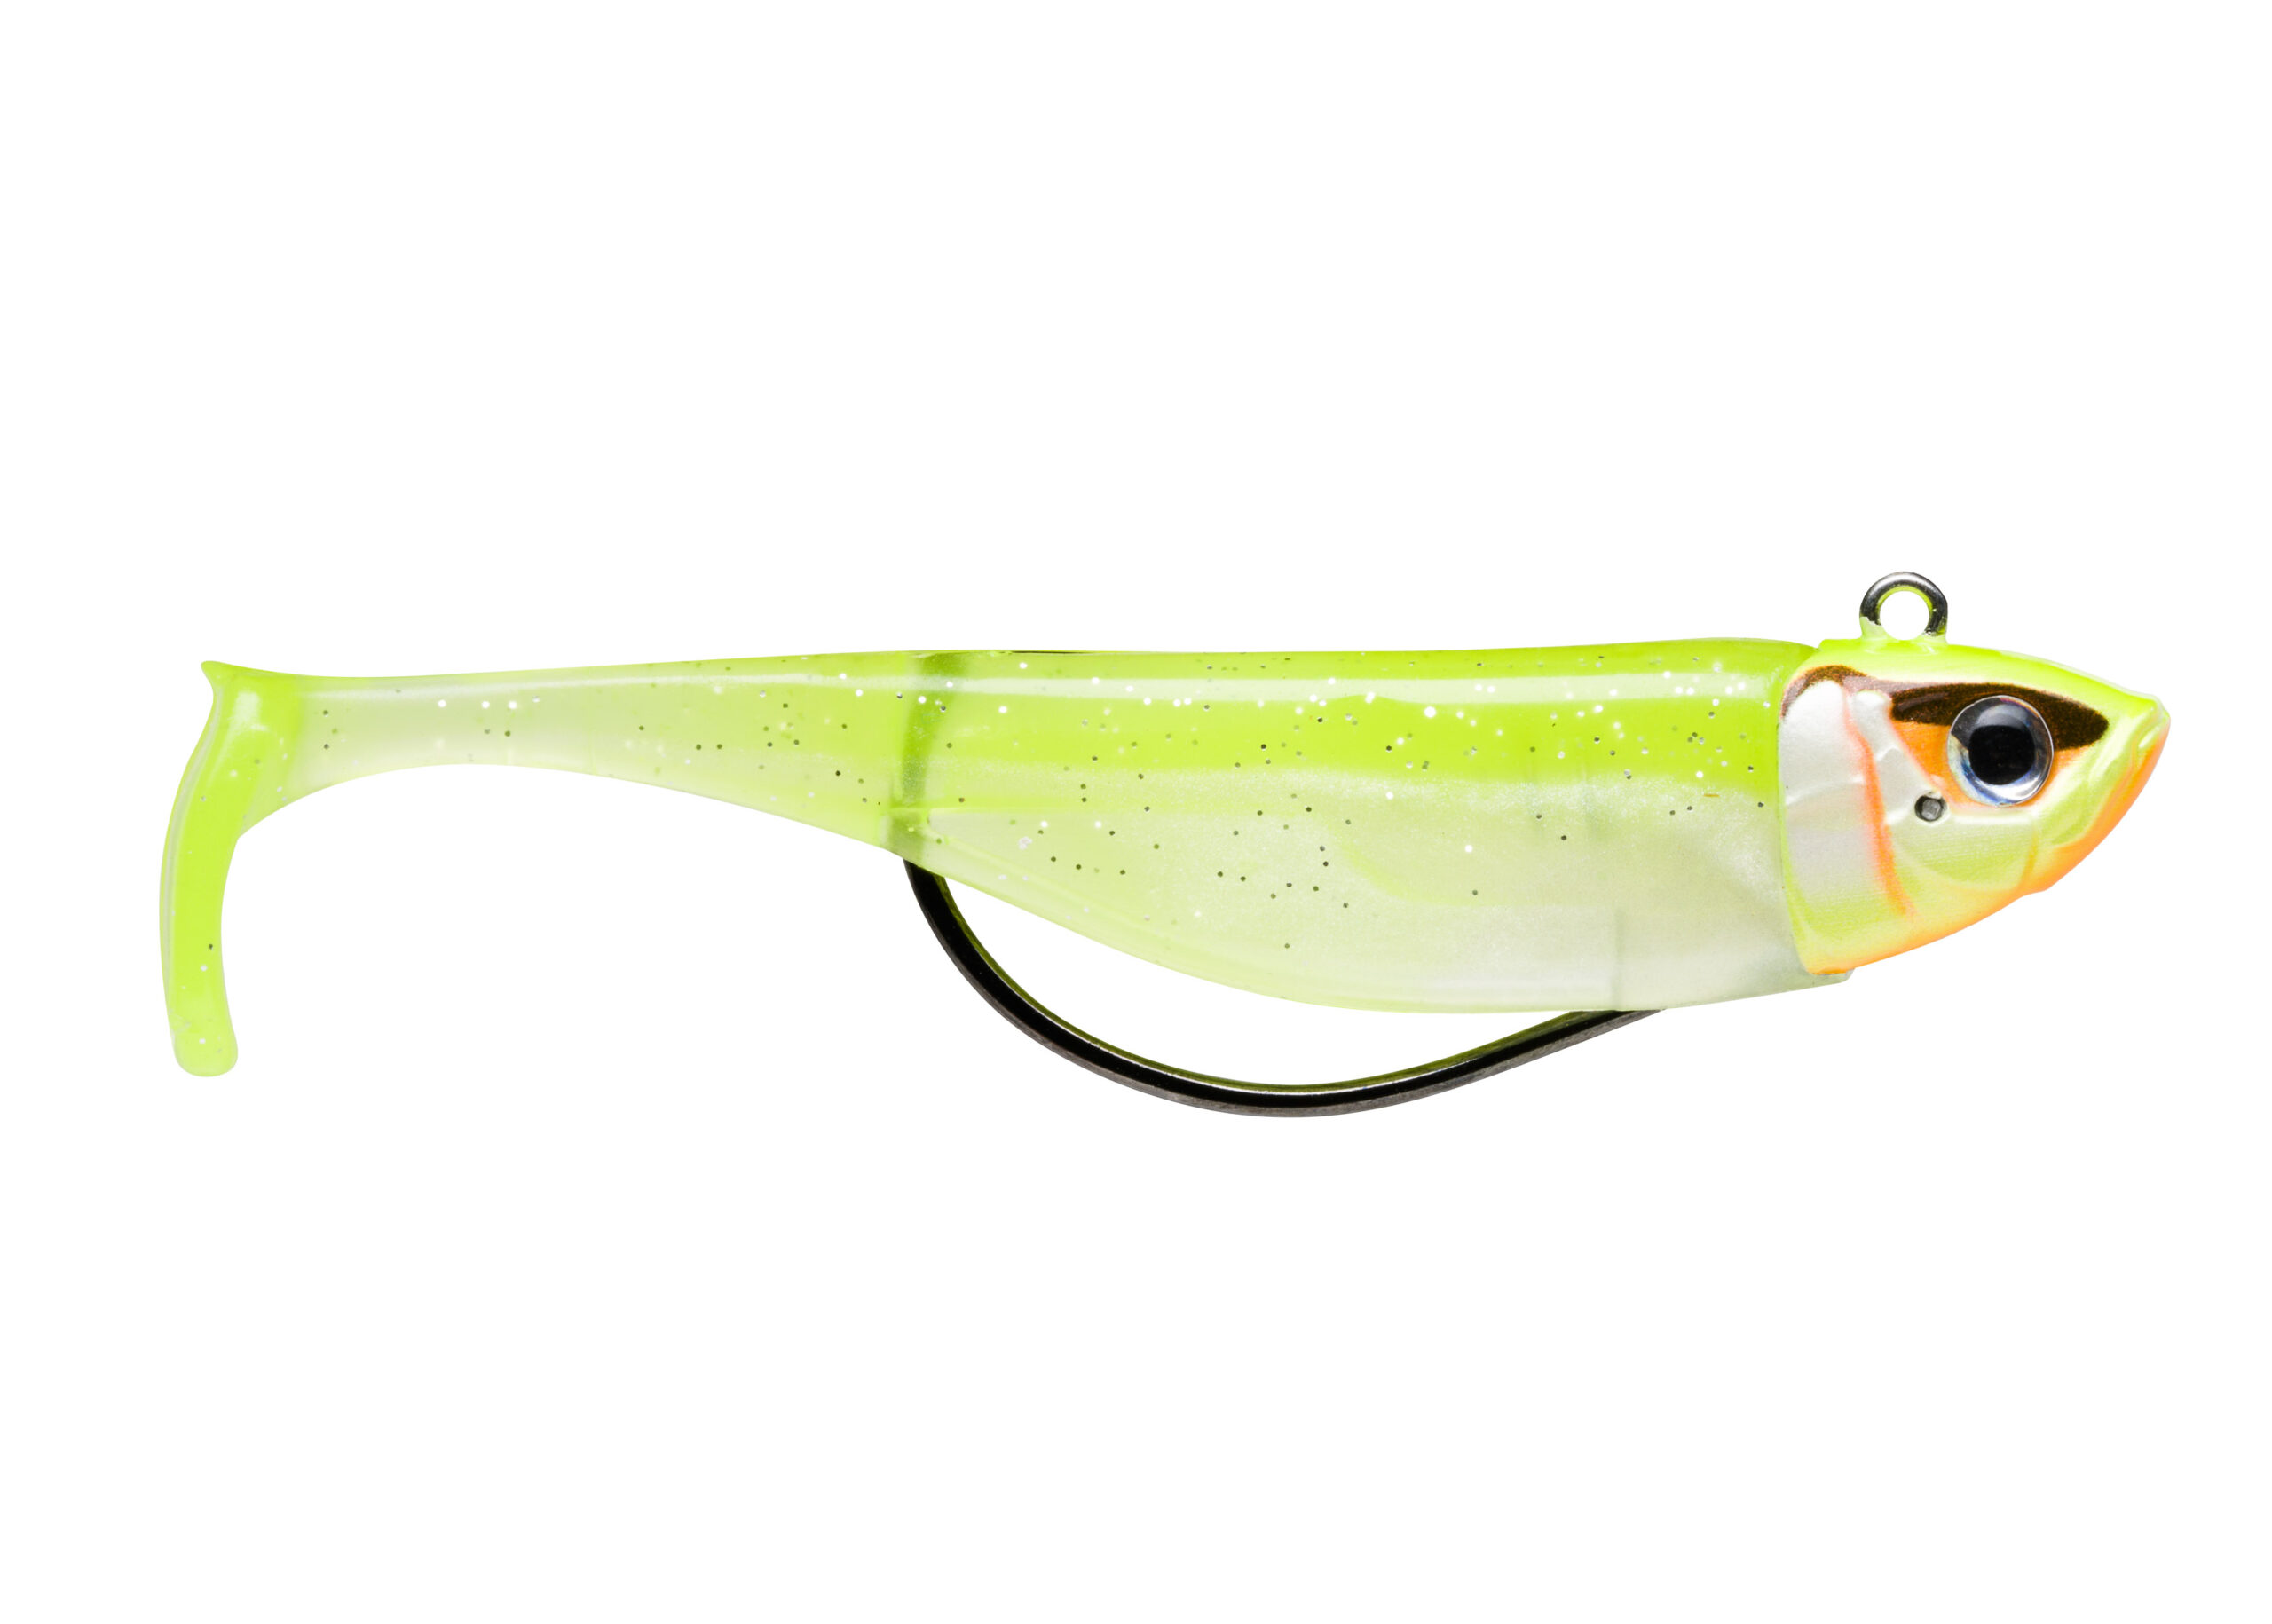 Storm 360 GT Biscay Shad Coastal Hot Chartreuse